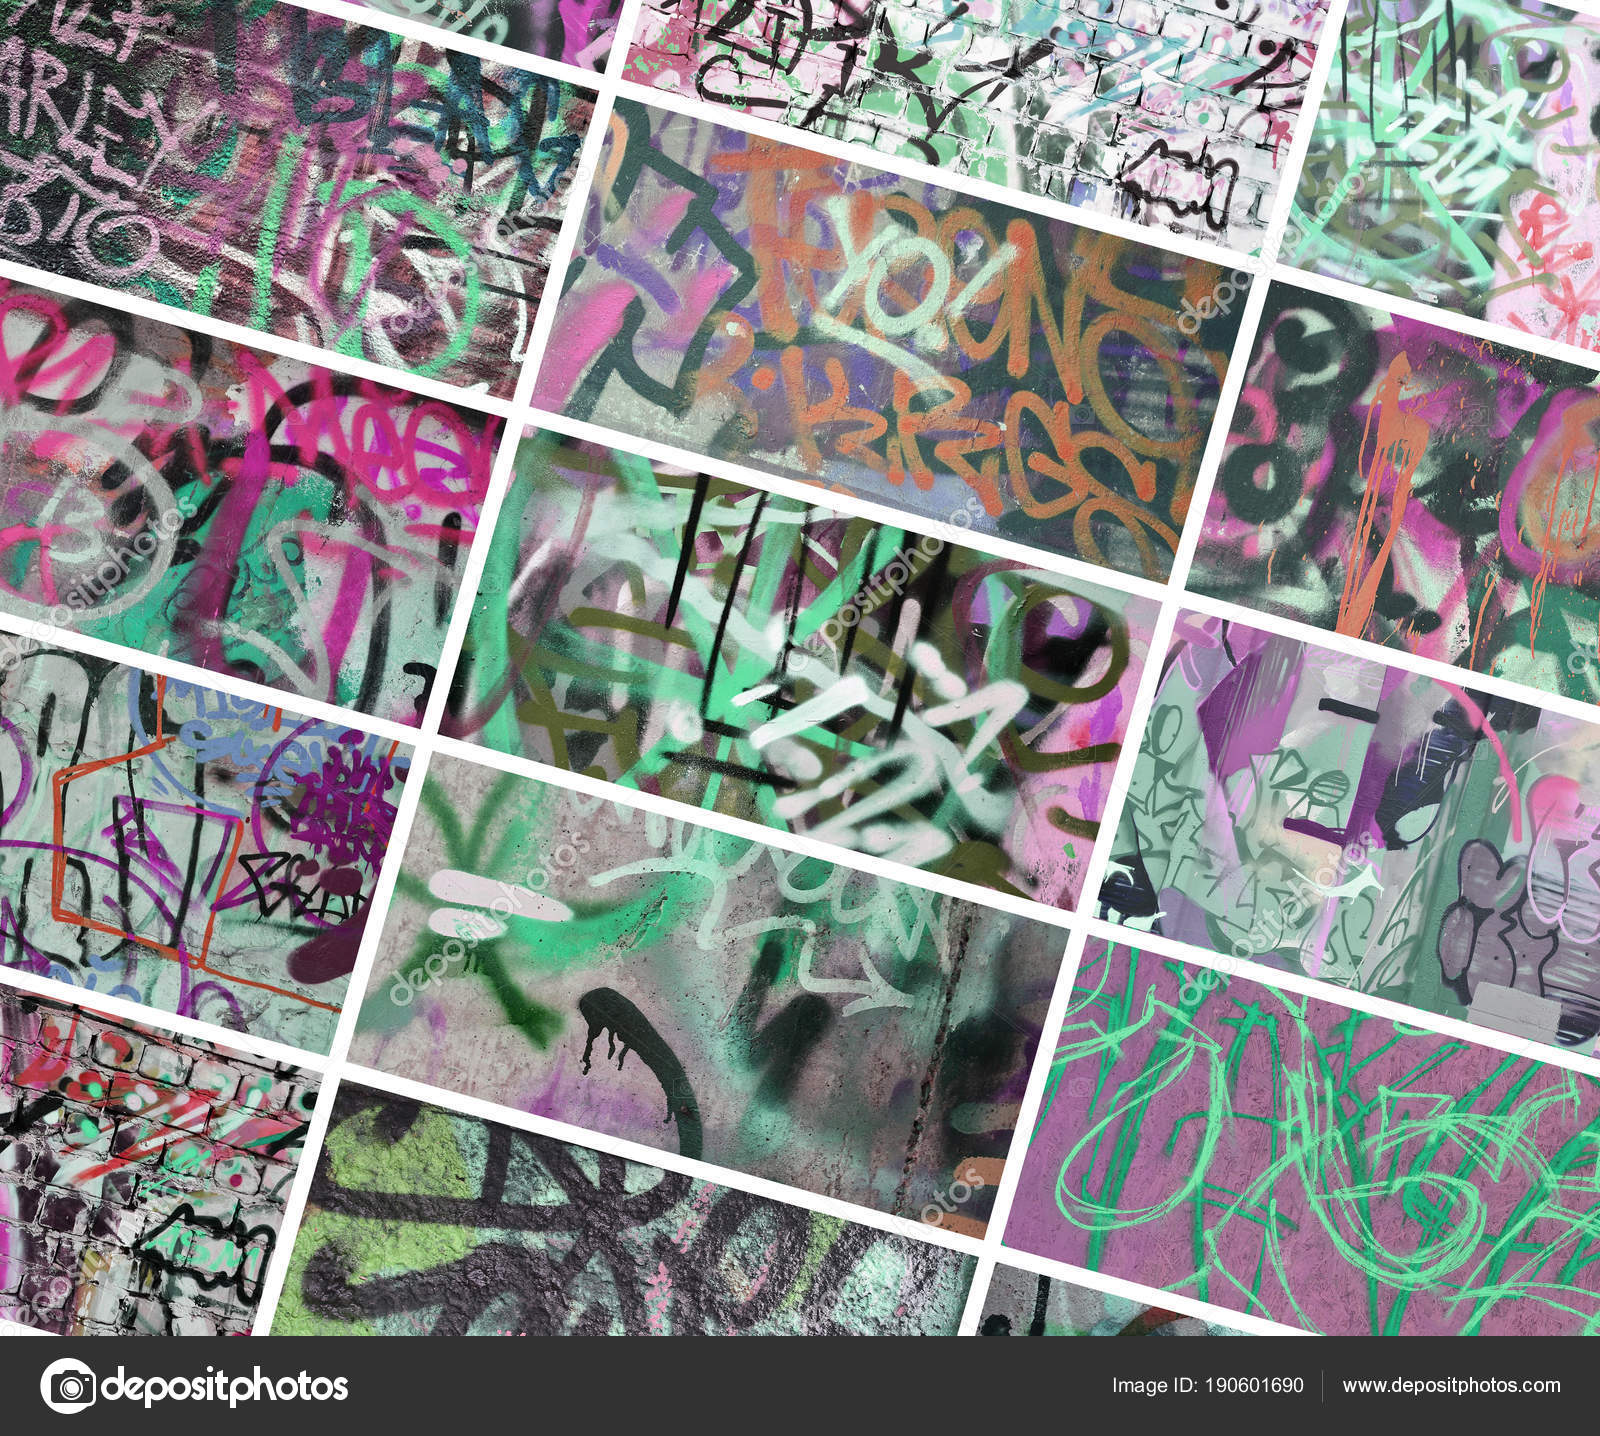 A Set Of Many Small Fragments Of Tagged Walls Graffiti Vandalism Abstract Background Collage In